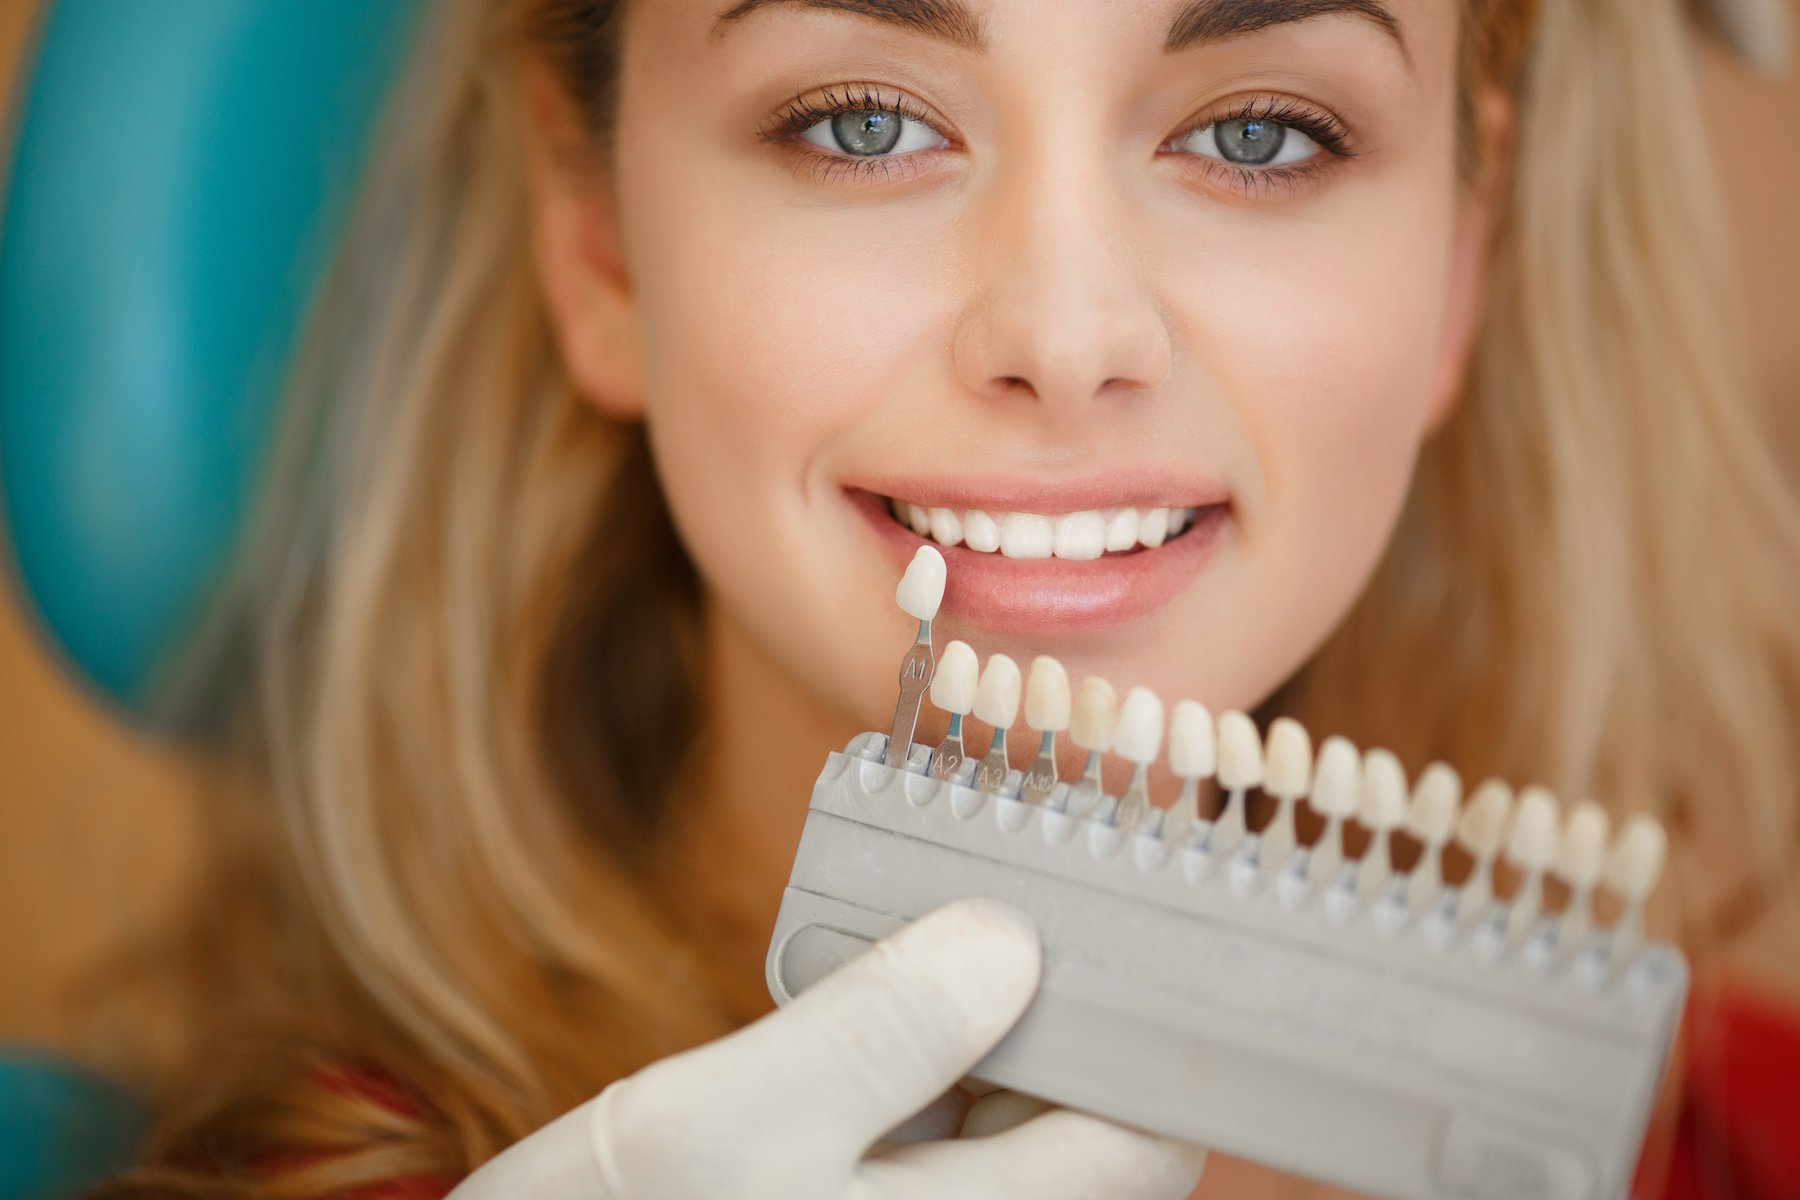 oral health surgery veneers cosmetic kelowna dentist office kelowna dr sandy crocker dr mitchell